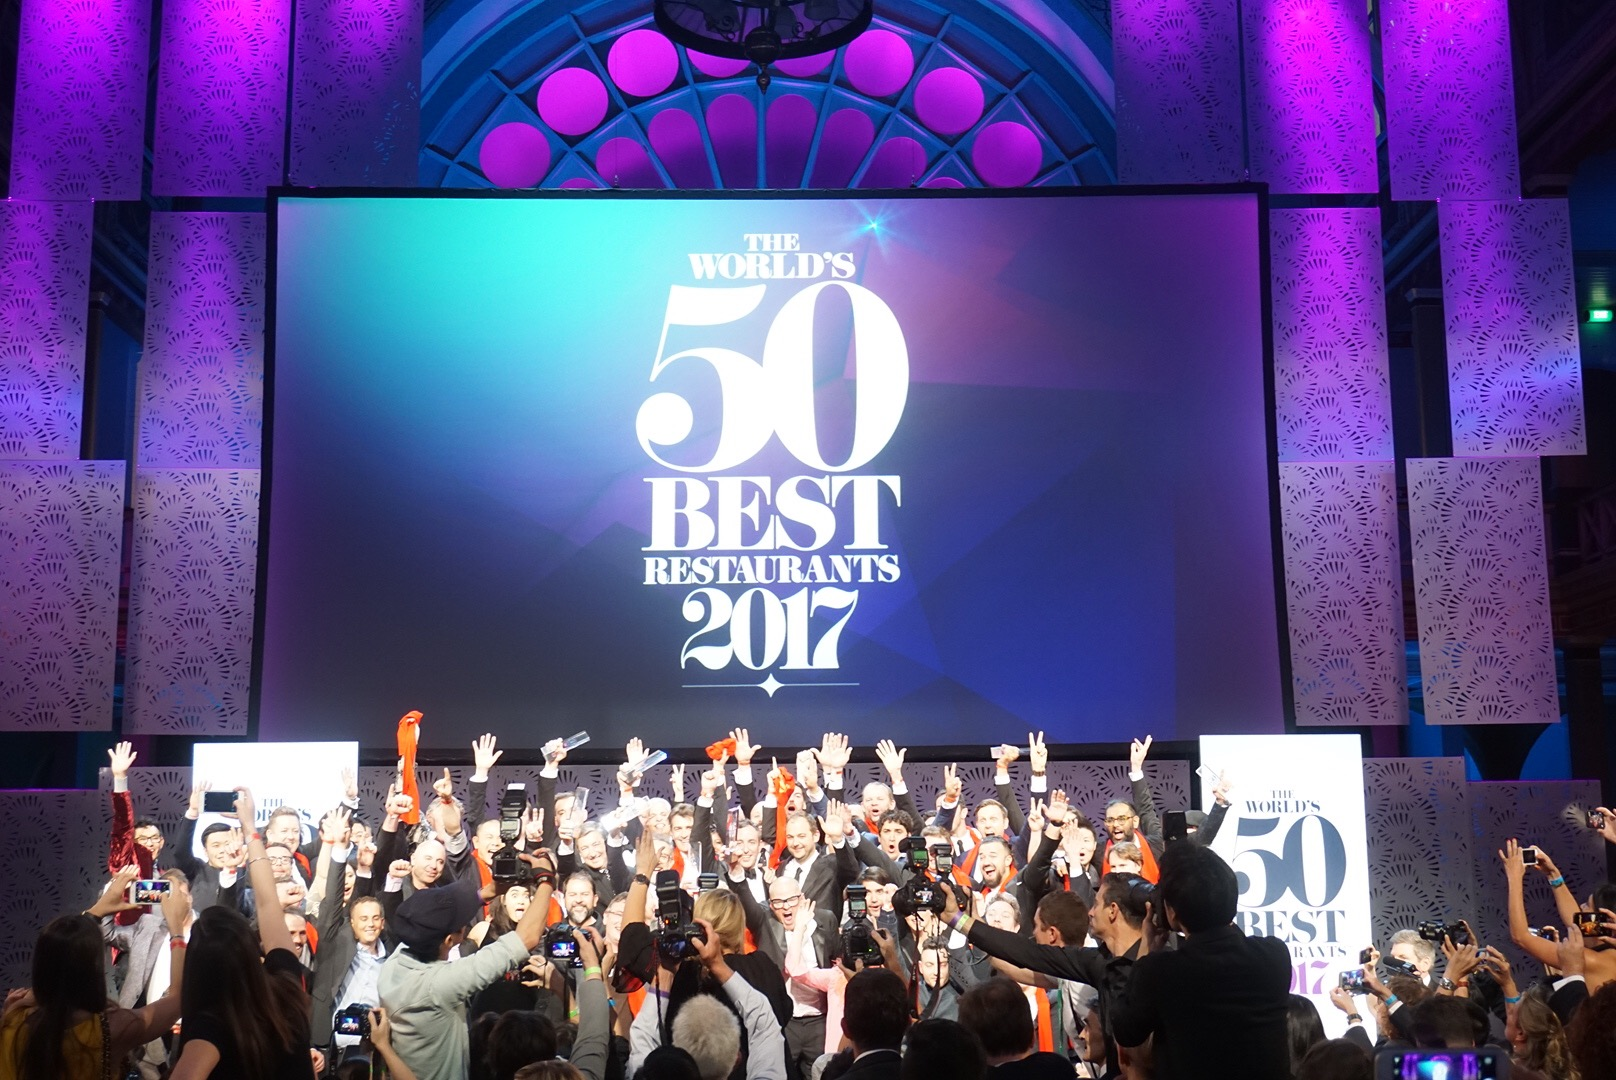 In Melbourne Australia For The Awards Ceremony Had Erflies Their Stomach As They Waited Announcements Of World S 50 Best Restaurants